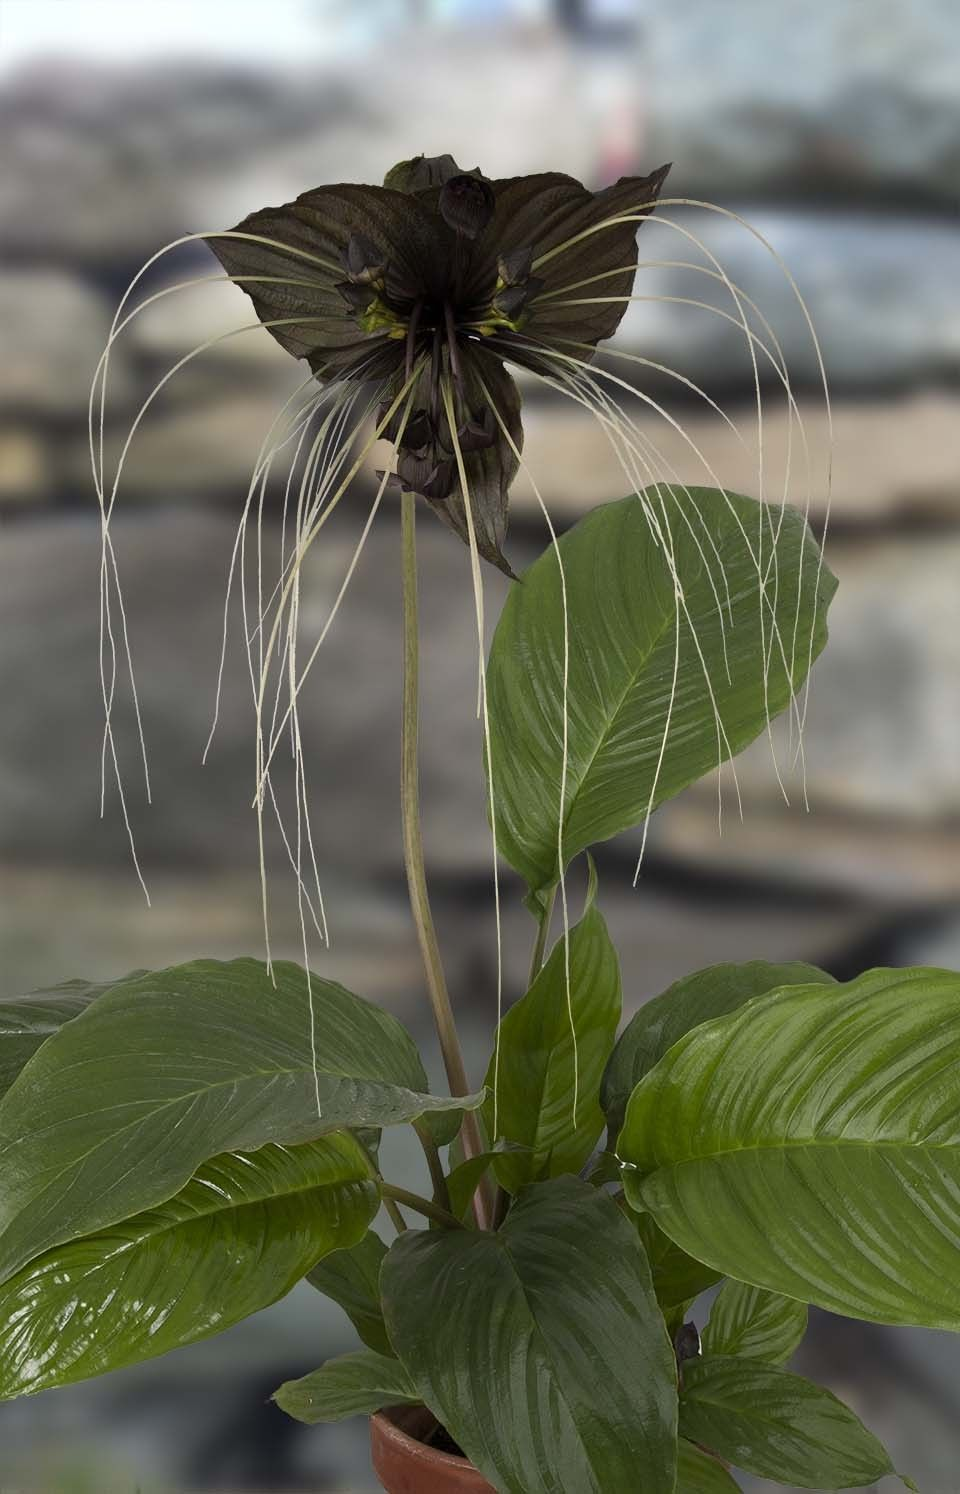 Black Bat Flower Tacca Chantrieri A Flower That Looks Like A Bat With Long Cat Whiskers Prefers Partial Sun Or Filtered L Bat Flower Flowers Strange Flowers